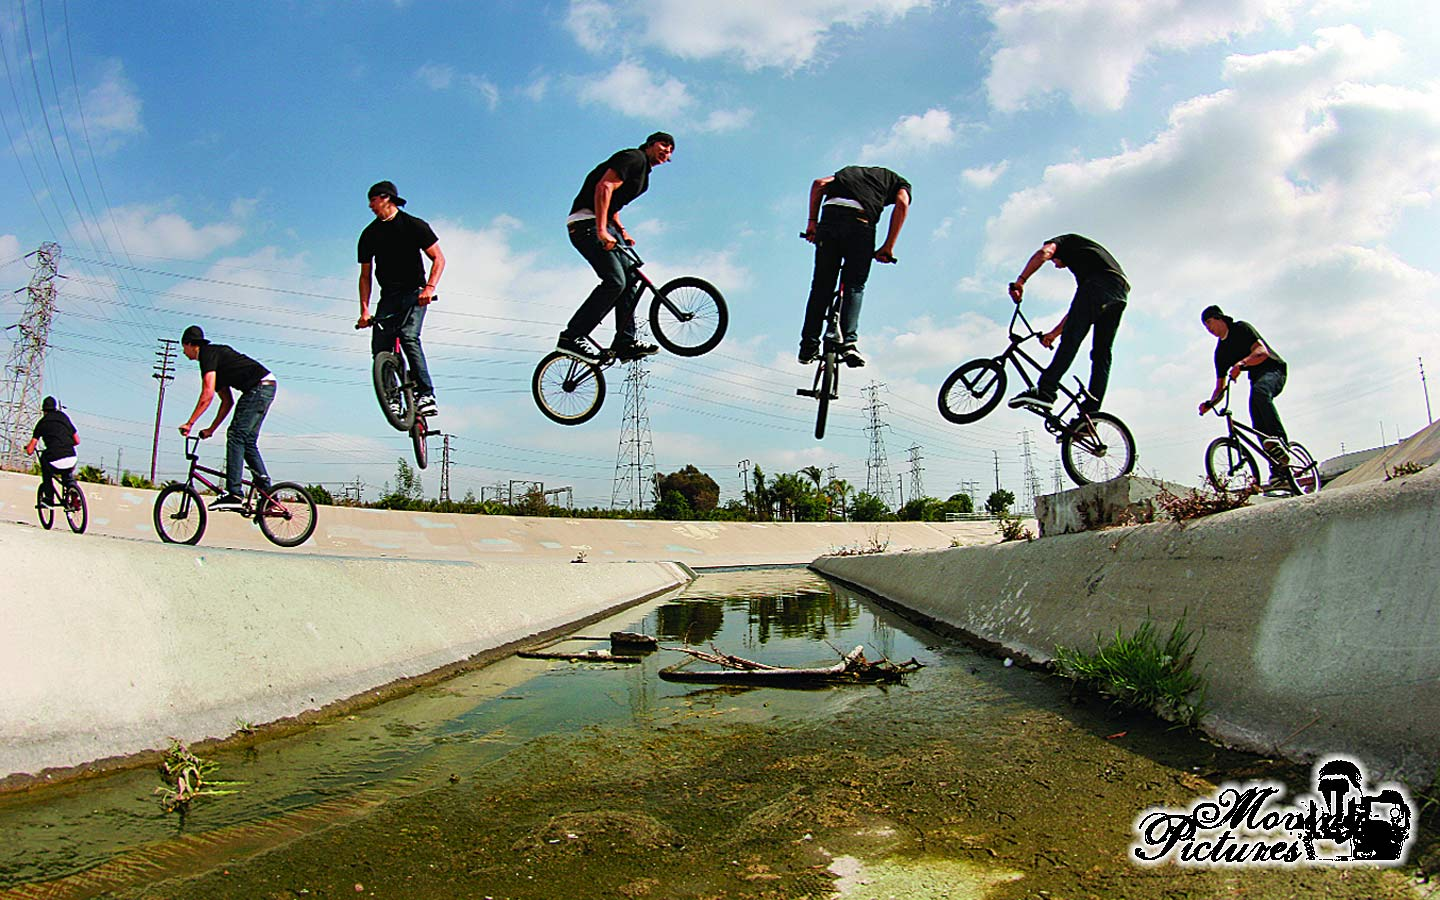 Bmx wallpapers wallpaper cave bmx wallpaper 1 378571 high definition wallpapers wallalay voltagebd Choice Image